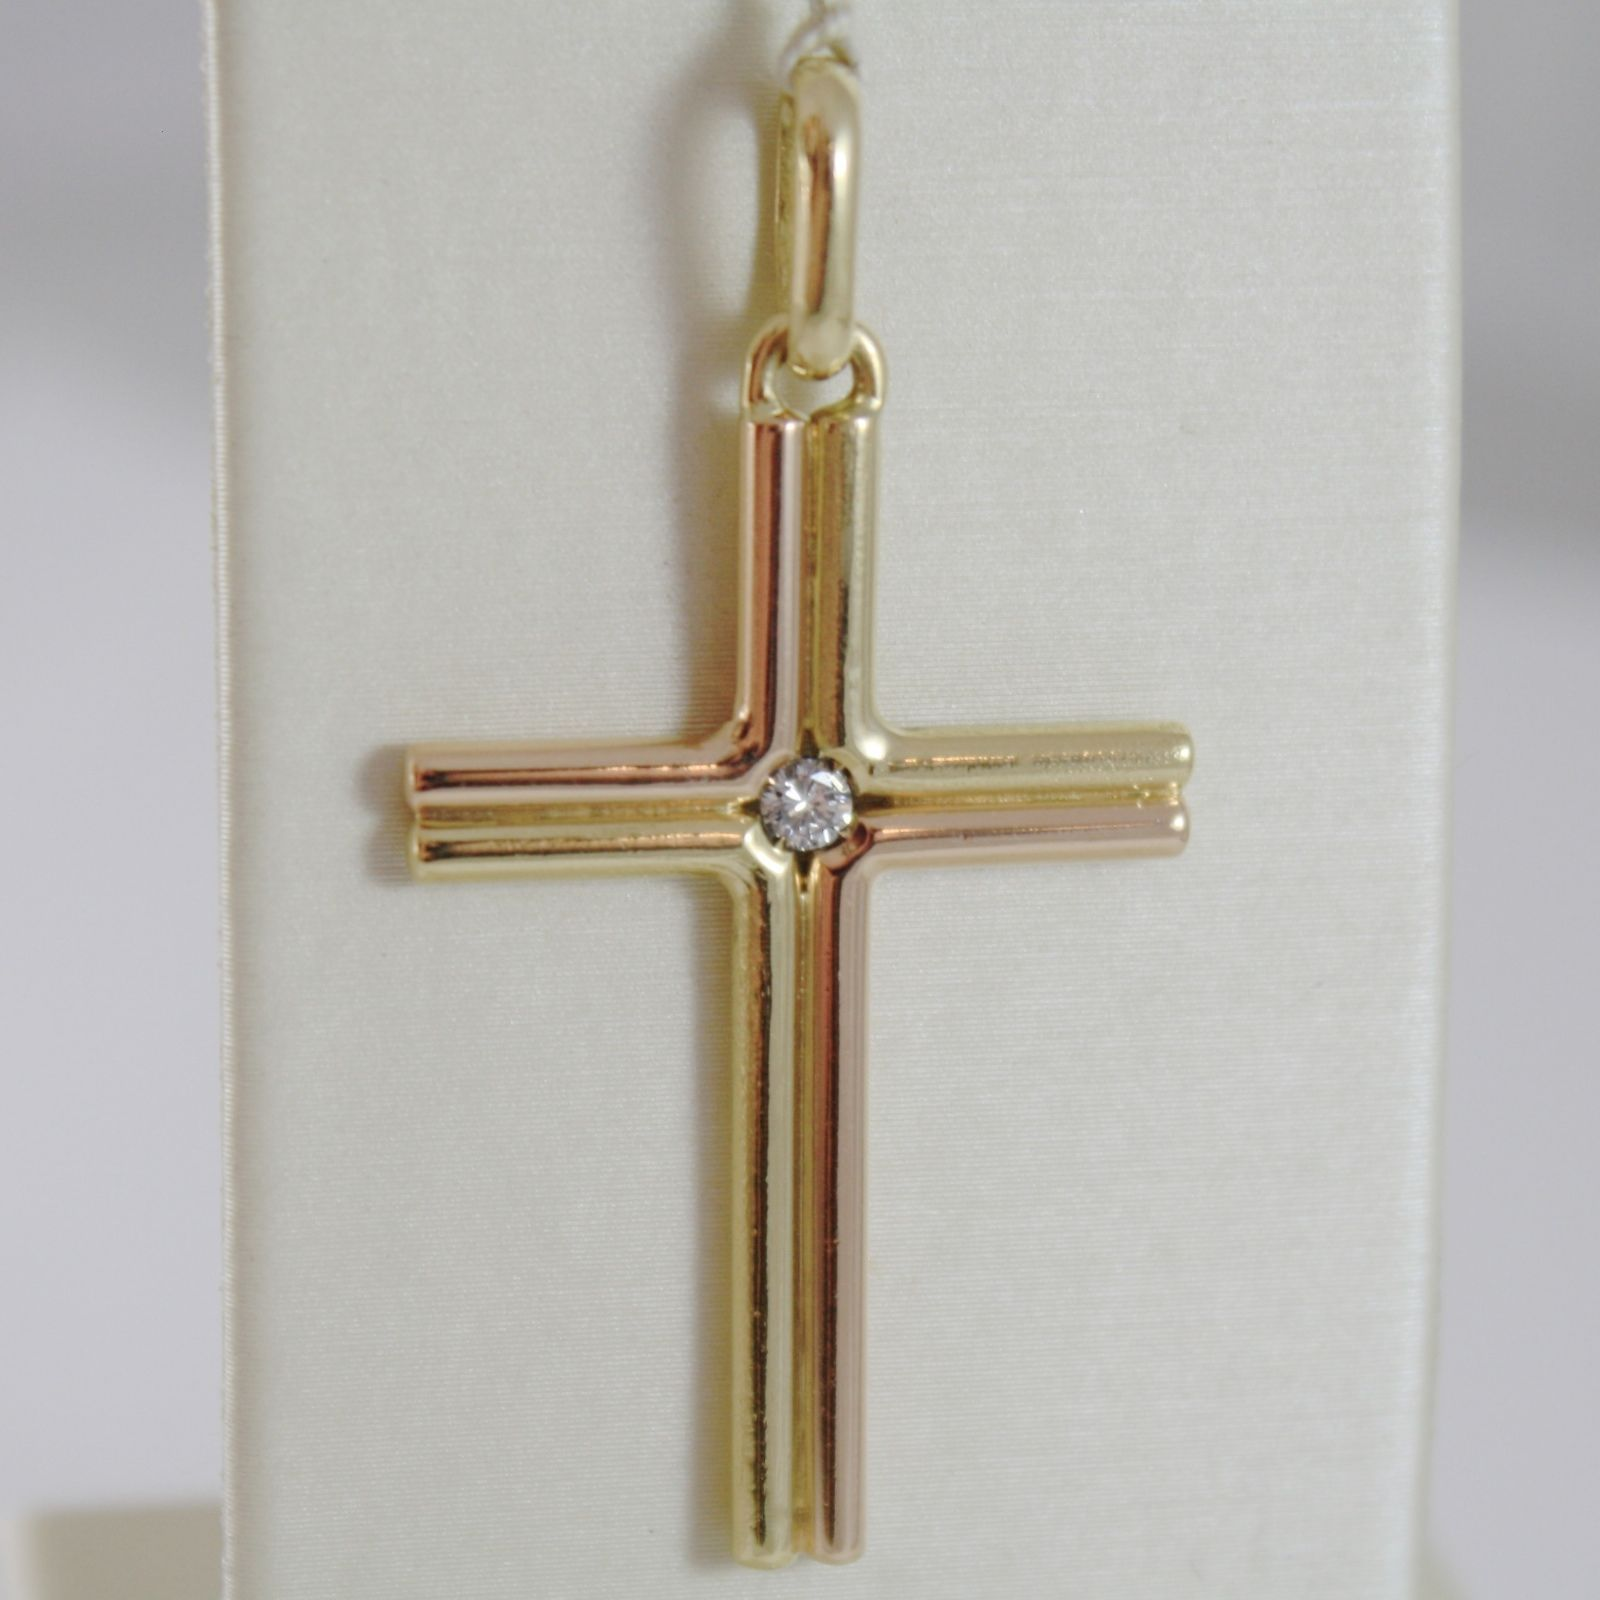 18K YELLOW ROSE GOLD CROSS DIAMOND SMOOTH STYLIZED DOUBLE TUBE, MADE IN ITALY